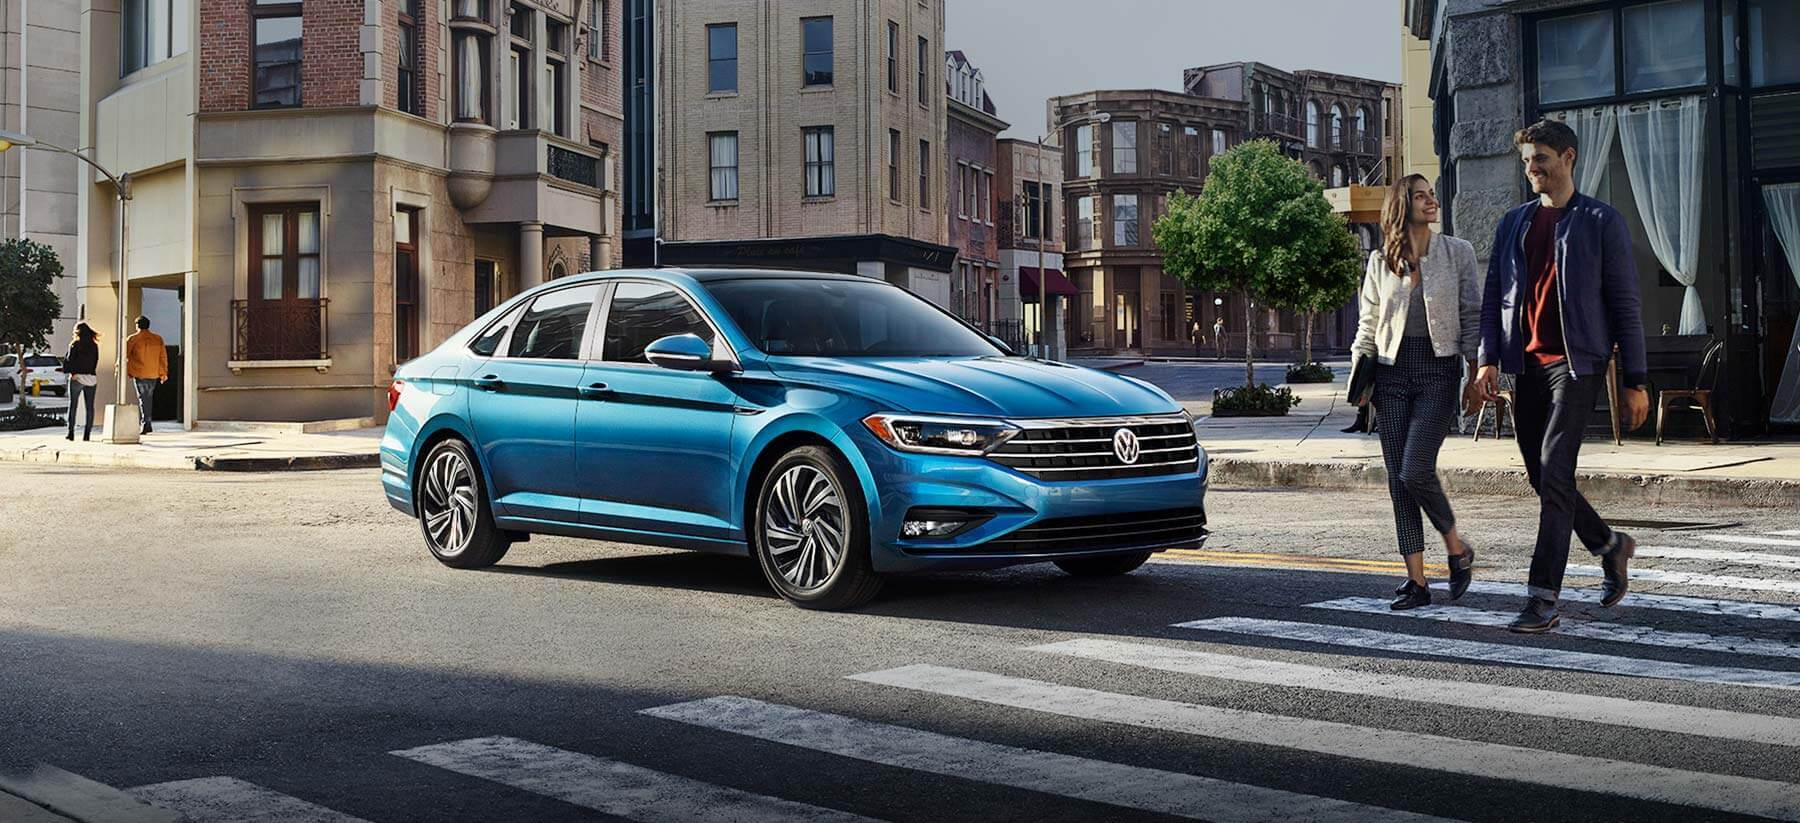 2019 Volkswagen Jetta in West Chester, PA